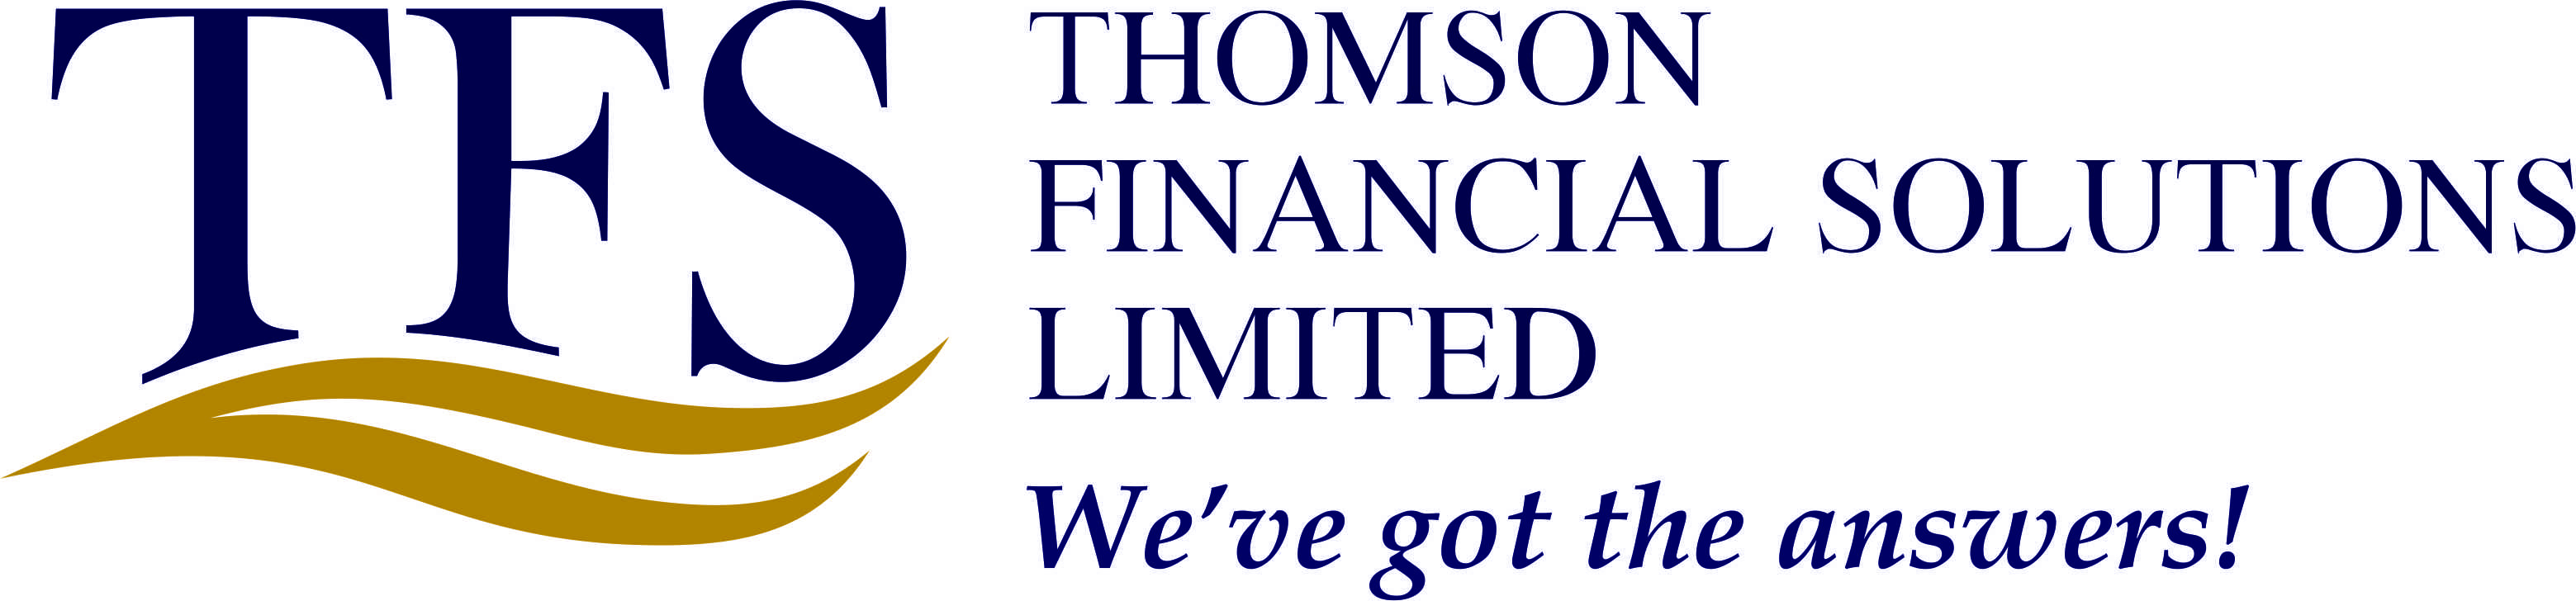 Thomson Financial Solutions Limited